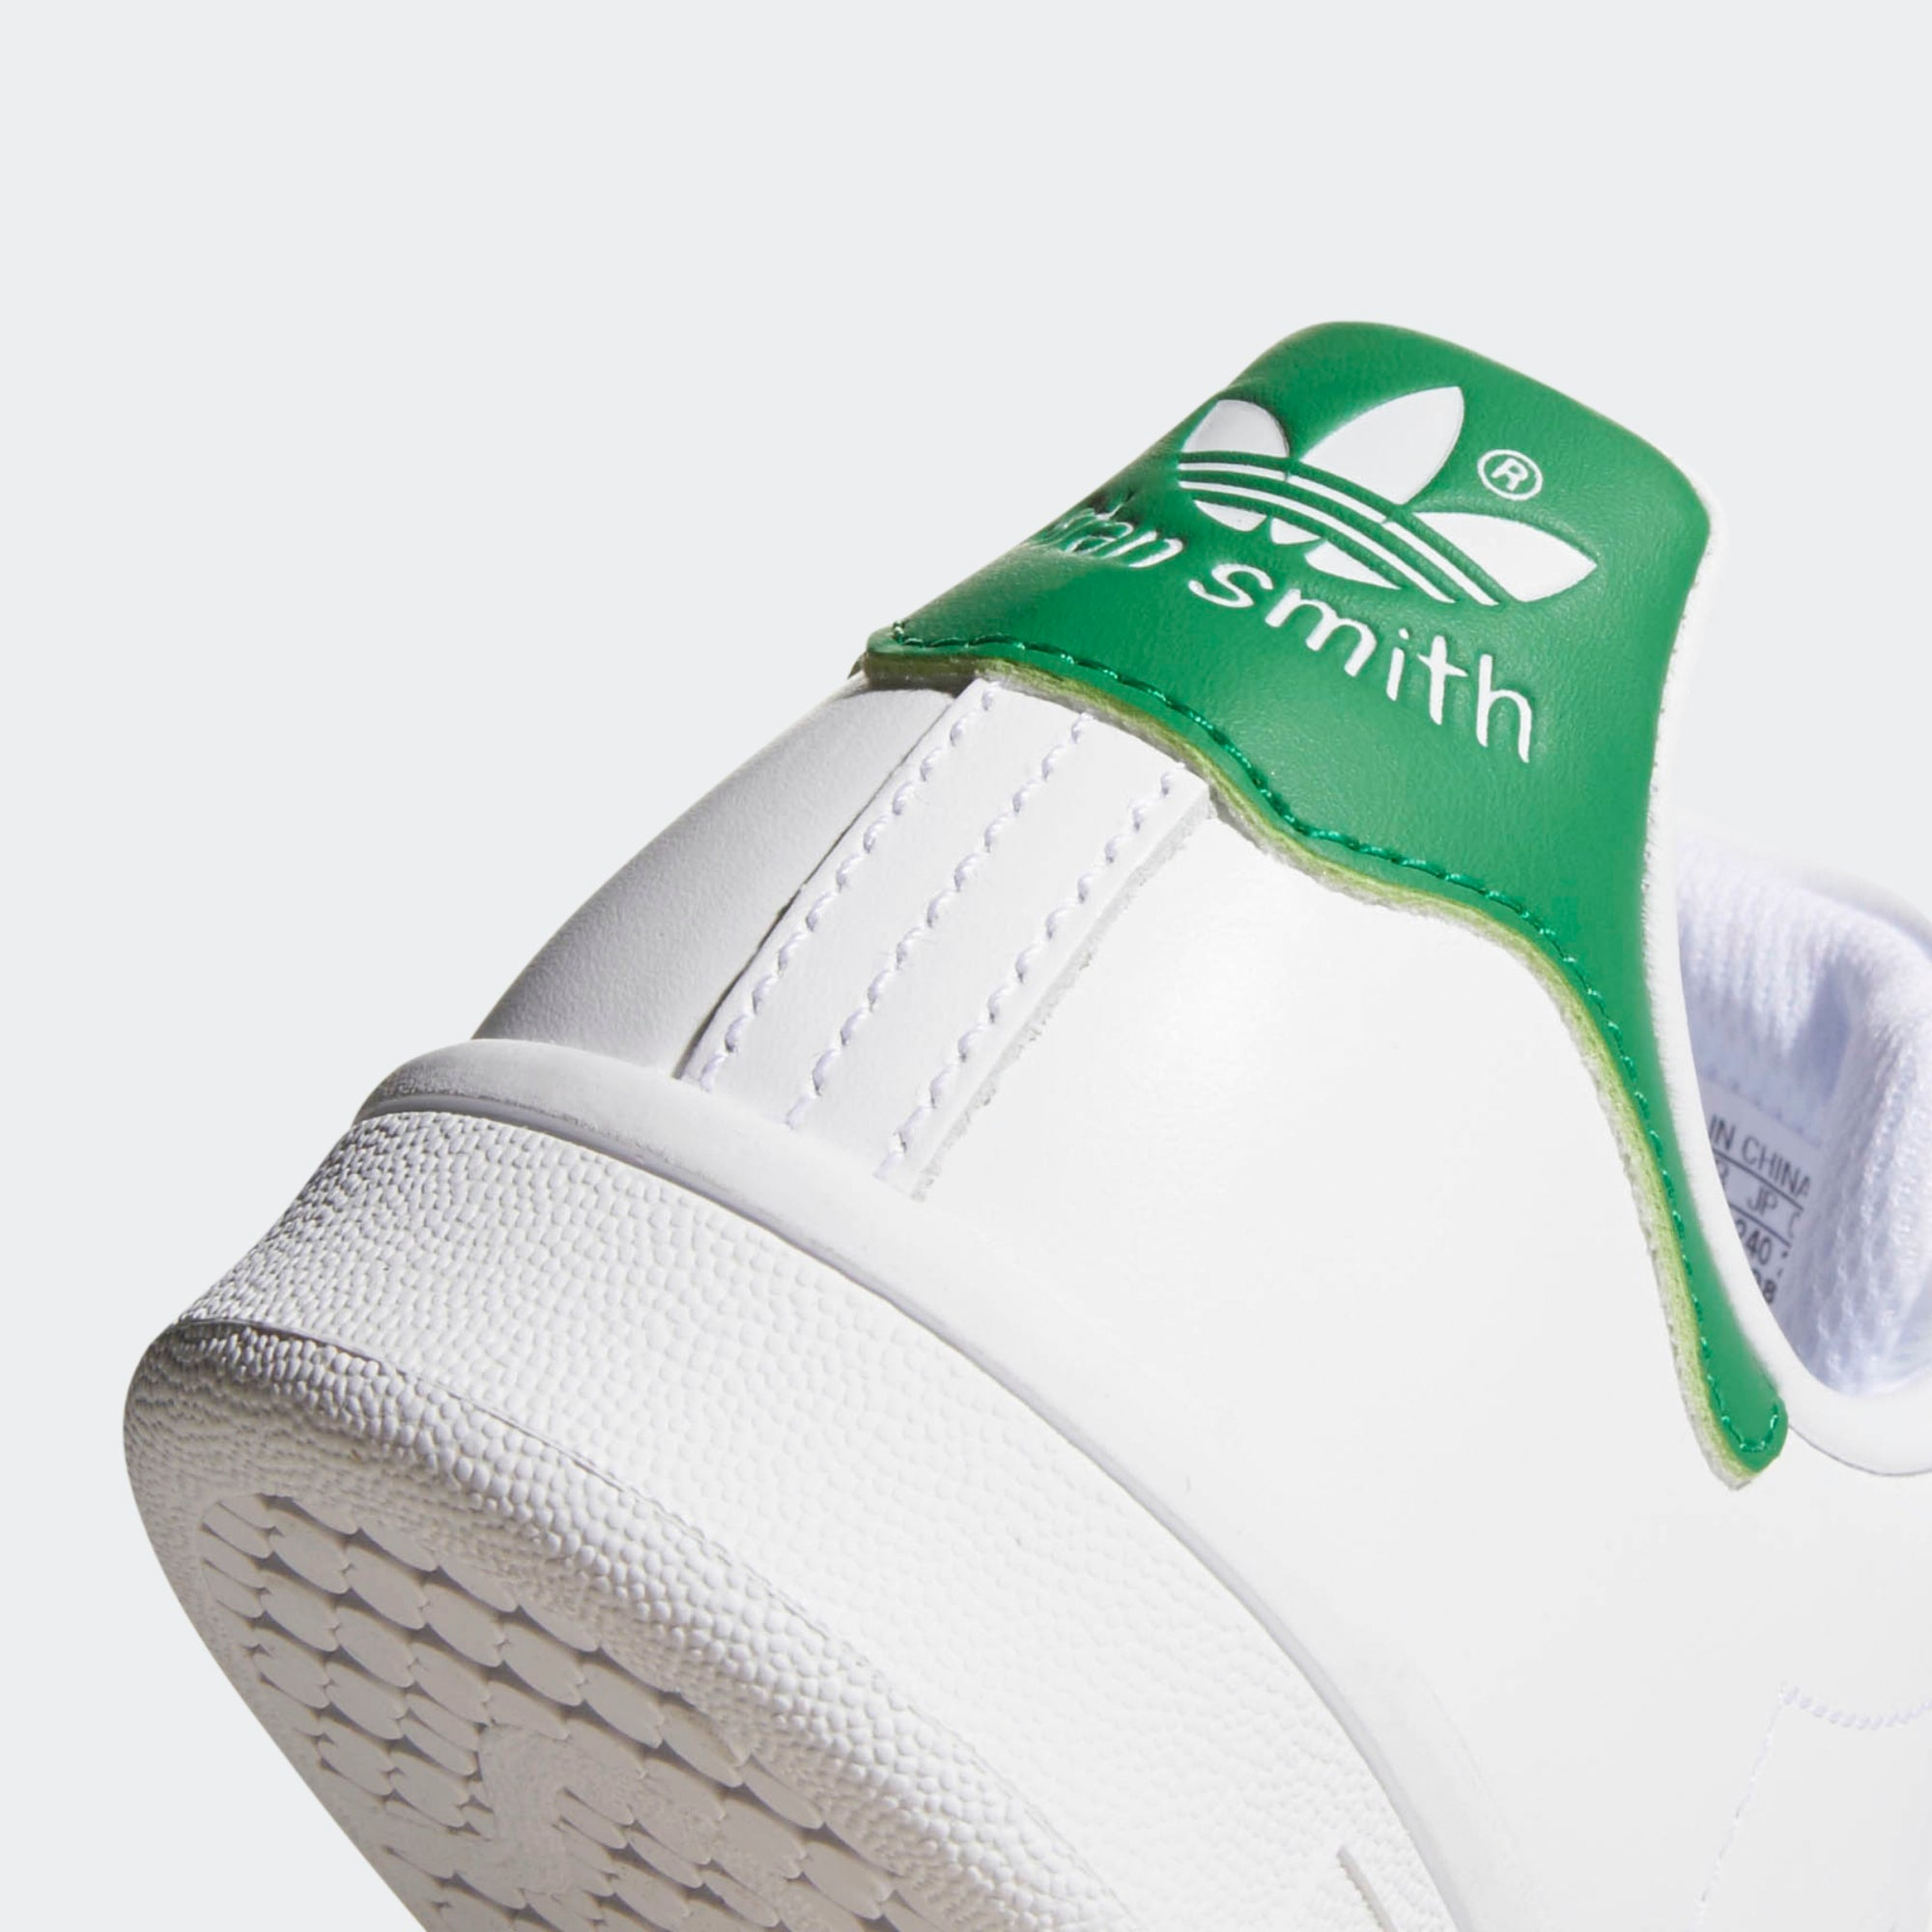 ADIDAS W'S FOOTWEAR W STAN SMITH - CLOUD WHITE/CLOUD WHITE